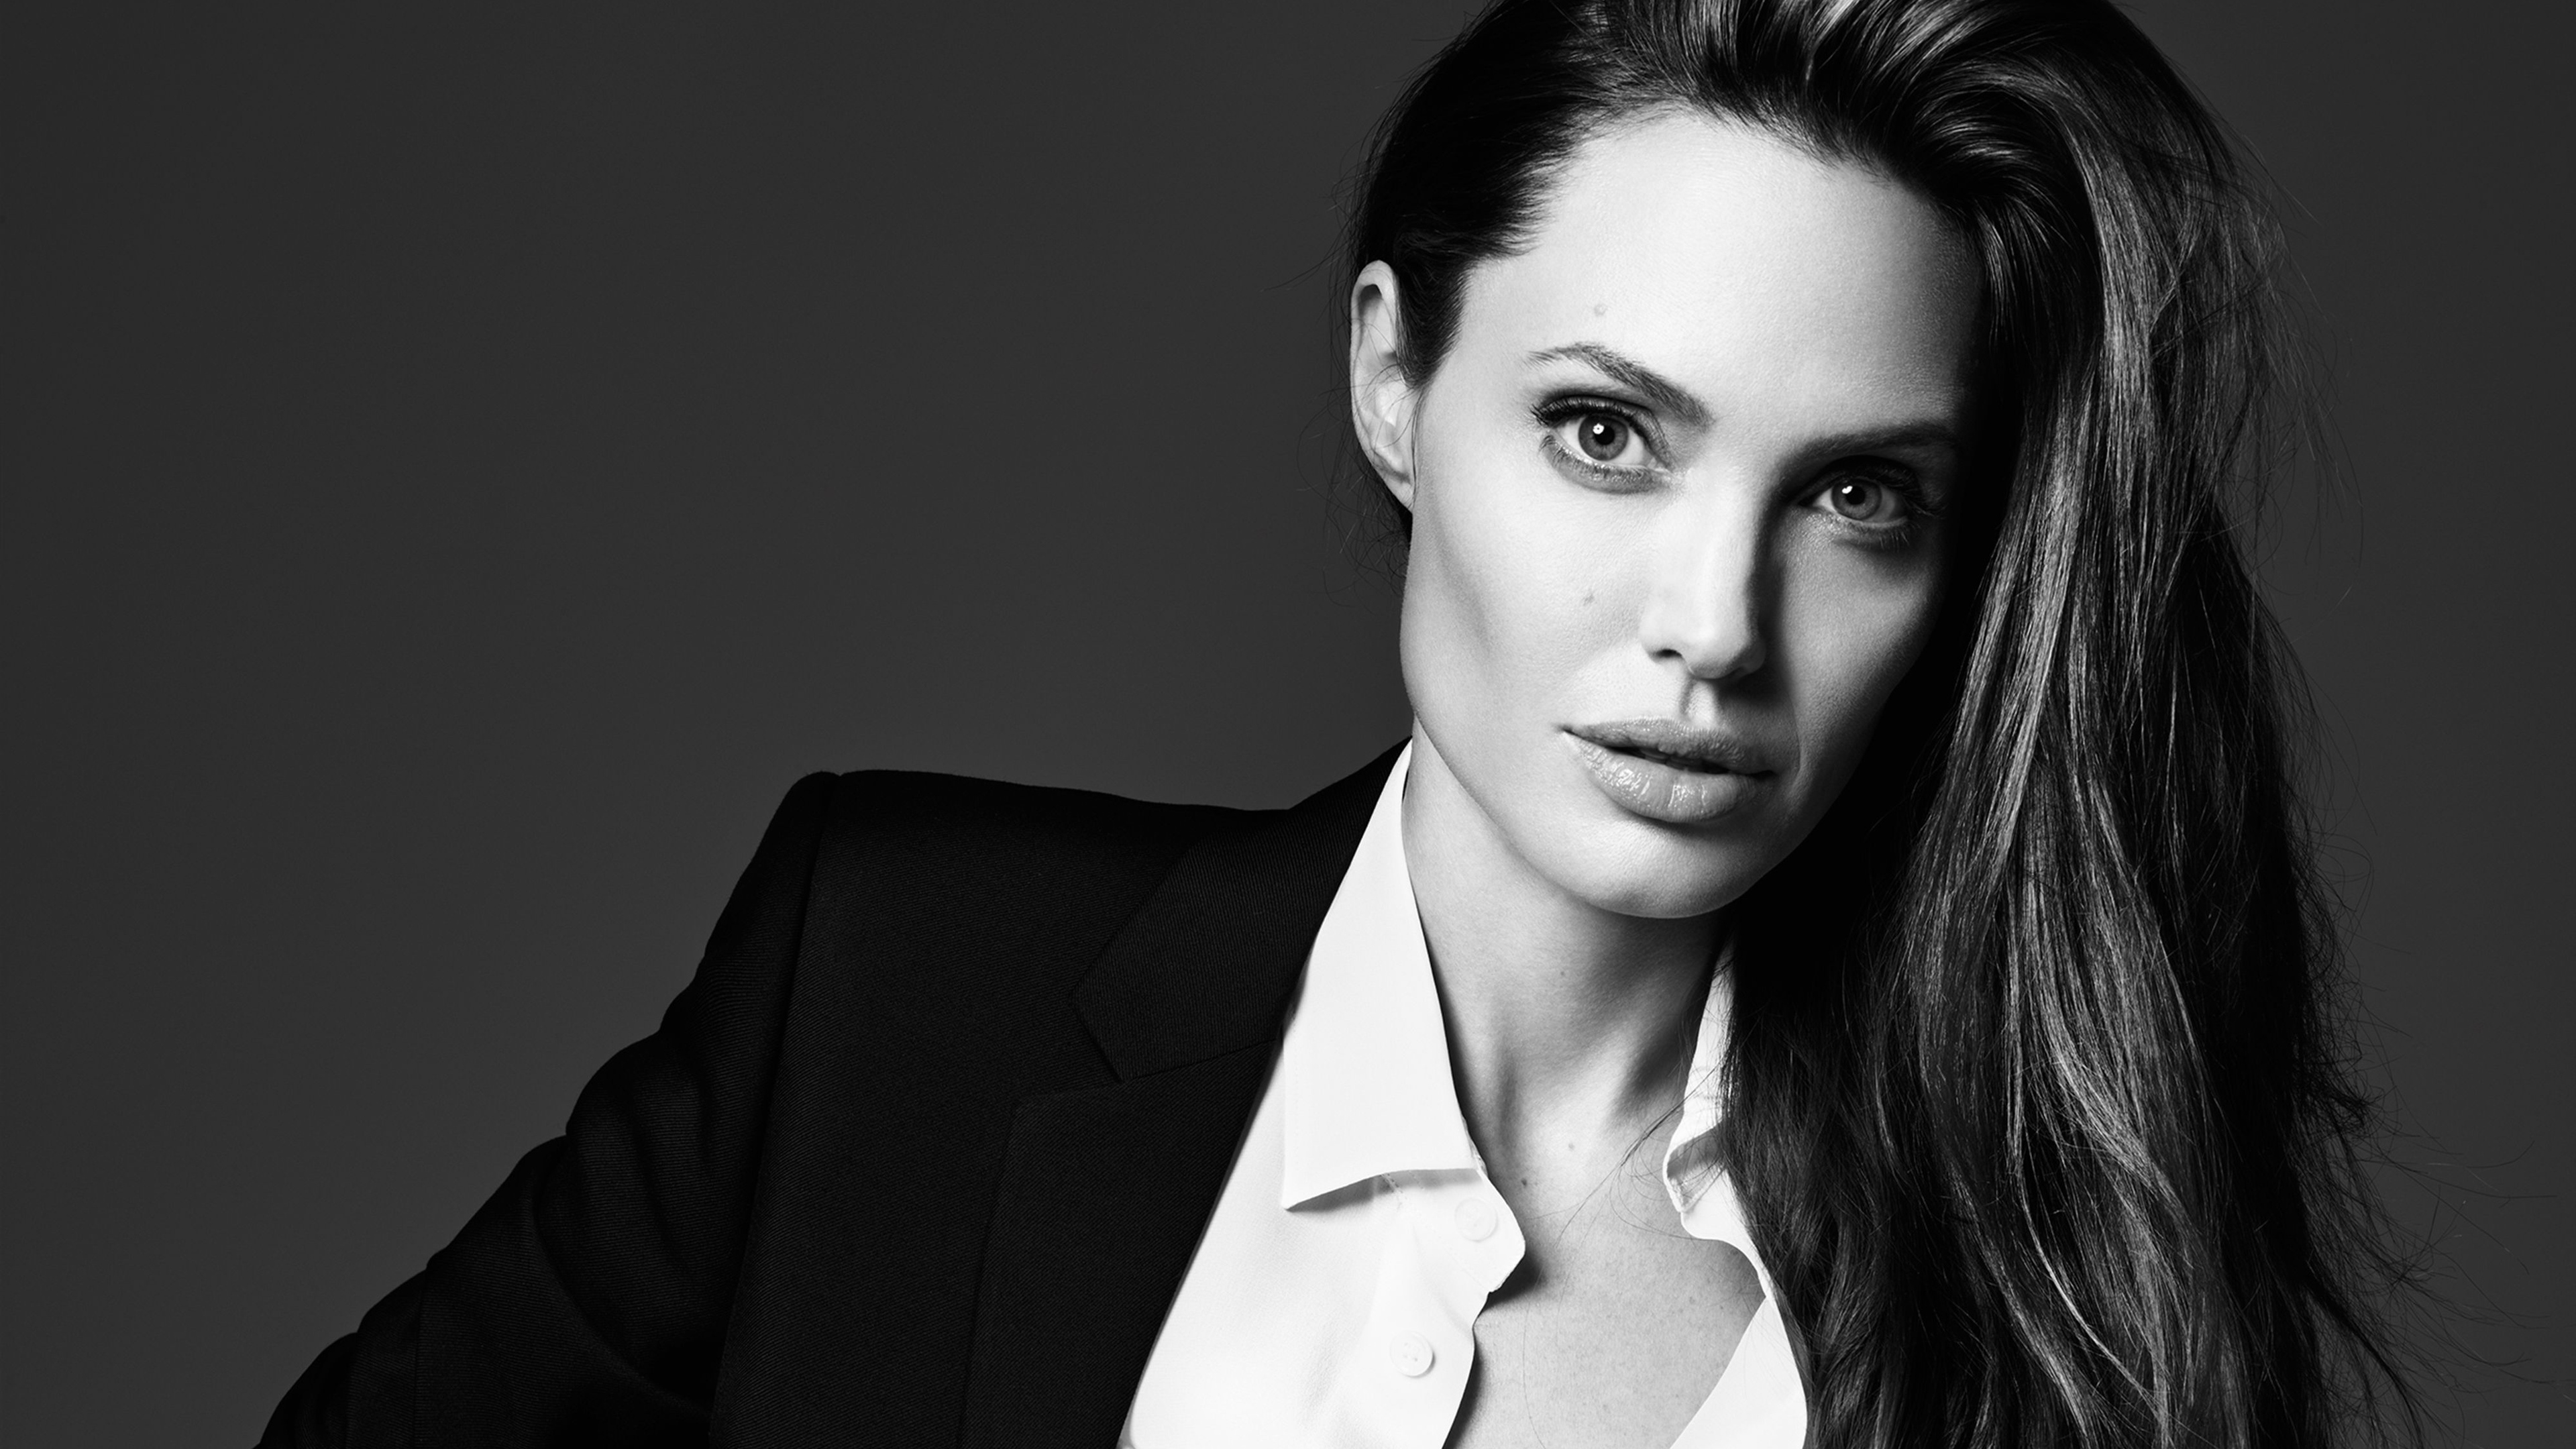 angelina jolie elle 2019 1543104597 - Angelina Jolie Elle 2018 - monochrome wallpapers, hd-wallpapers, girls wallpapers, celebrities wallpapers, black and white wallpapers, angelina jolie wallpapers, 4k-wallpapers